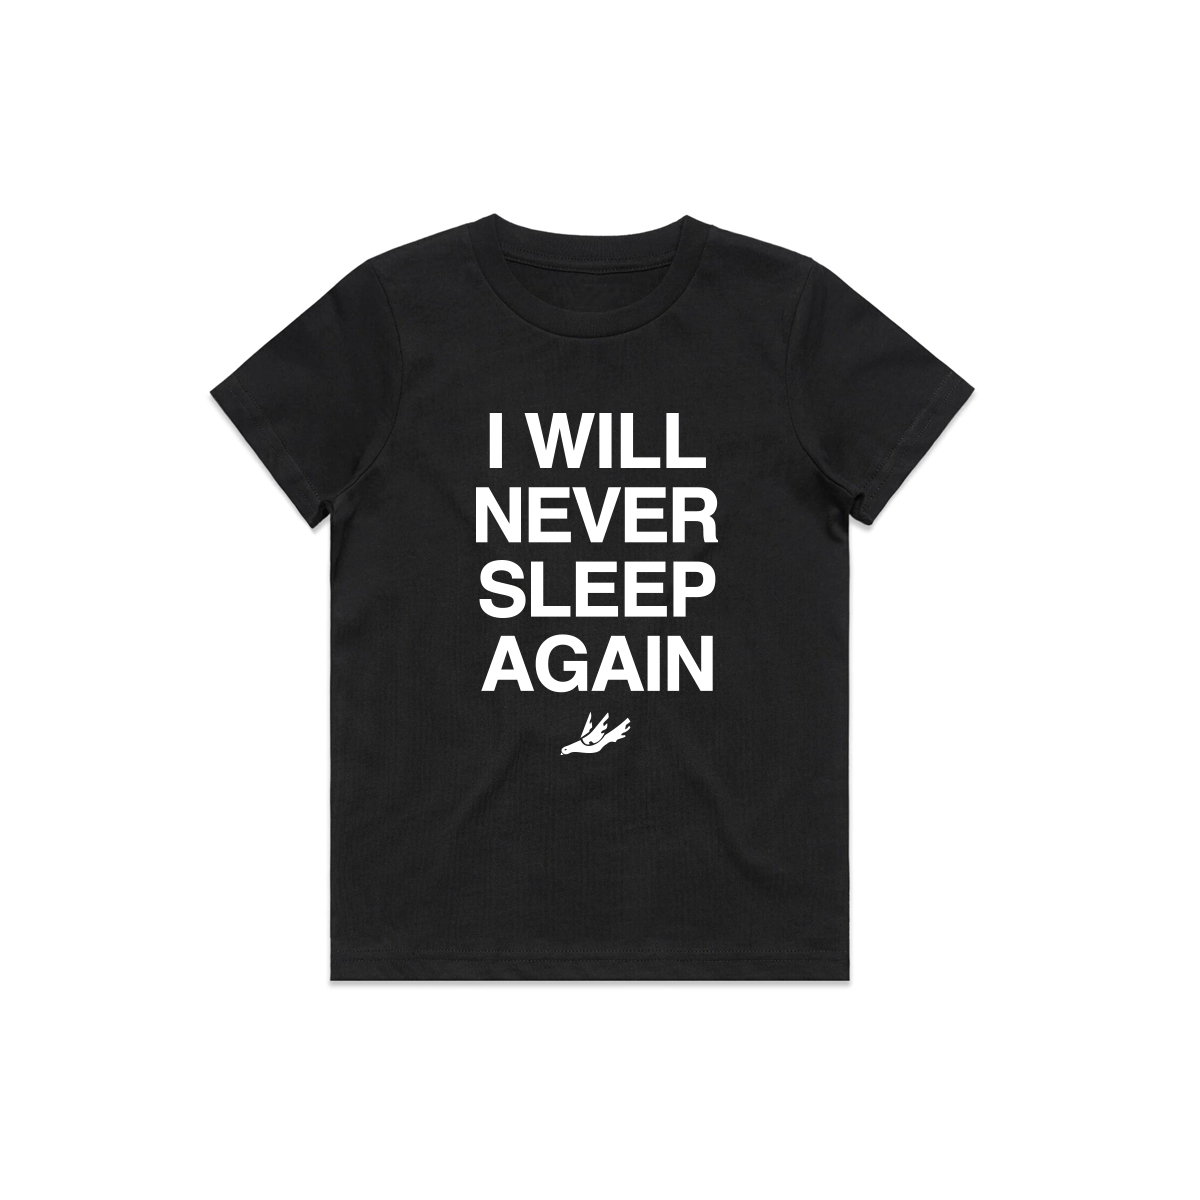 How Short Is The Night? Toddler Tee